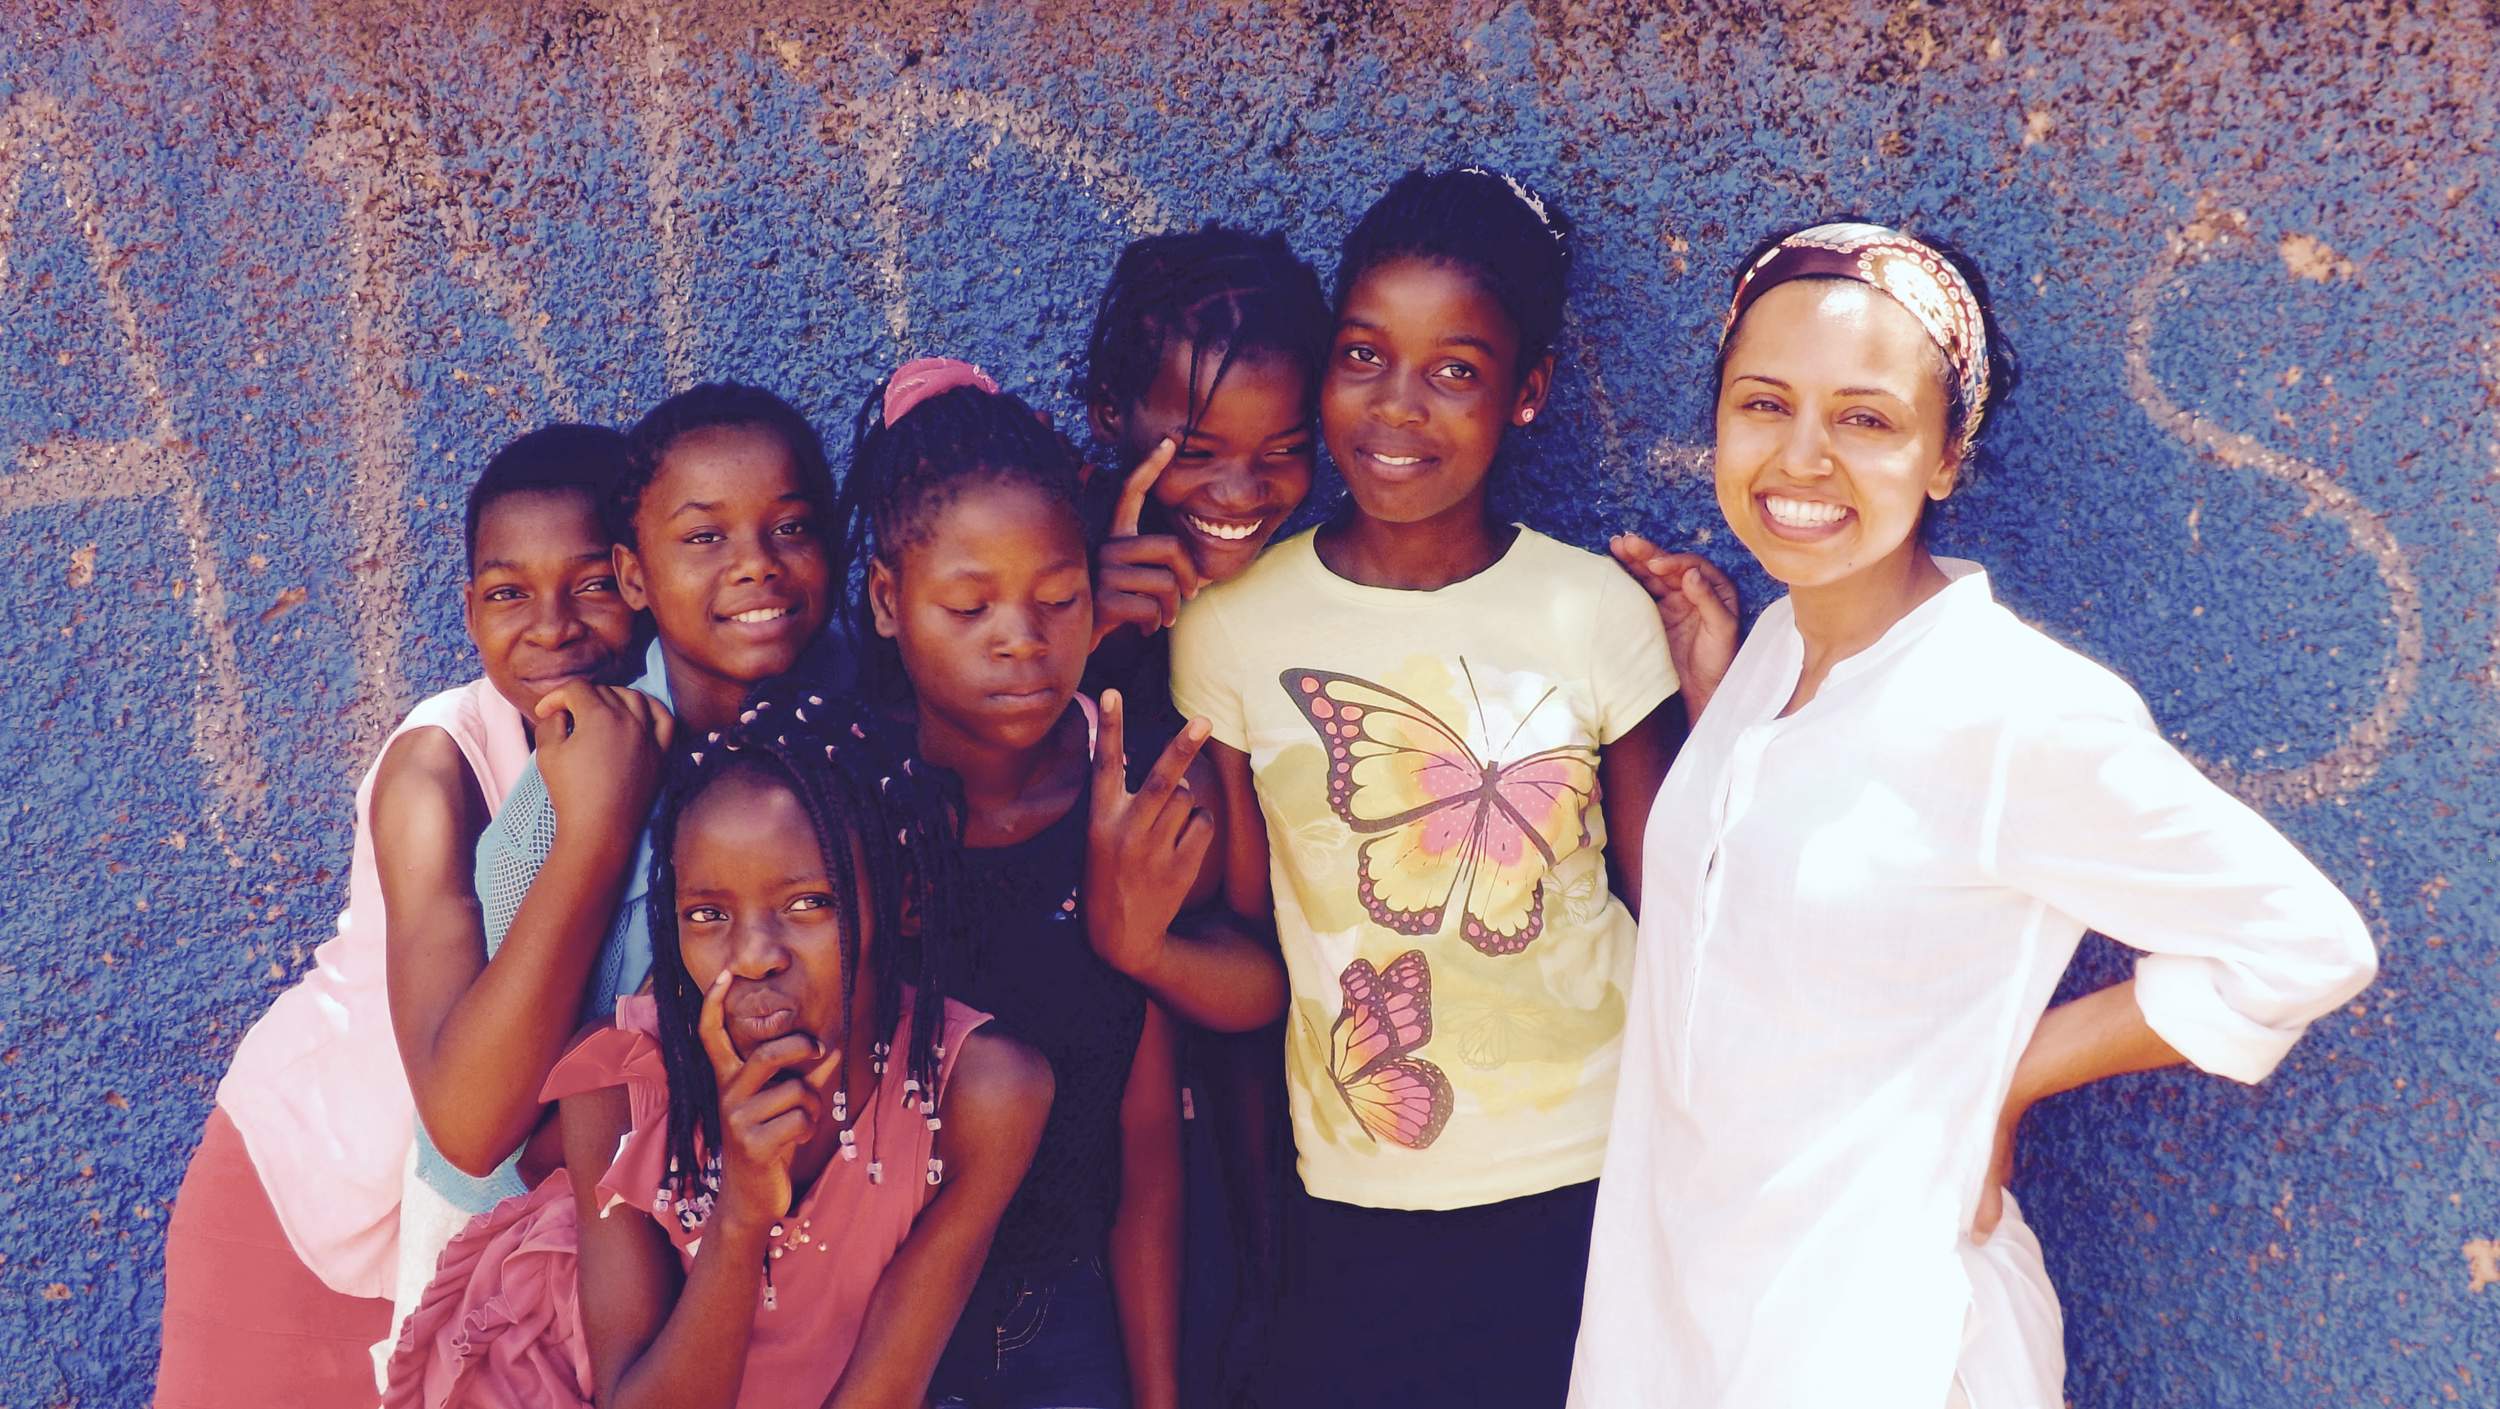 THE FIRST GROUP OF FUTURESPARK SCHOLARS WITH FUTURESPARK FOUNDER, ANITA JOSHI, IN MAFALALA, MOZAMBIQUE.